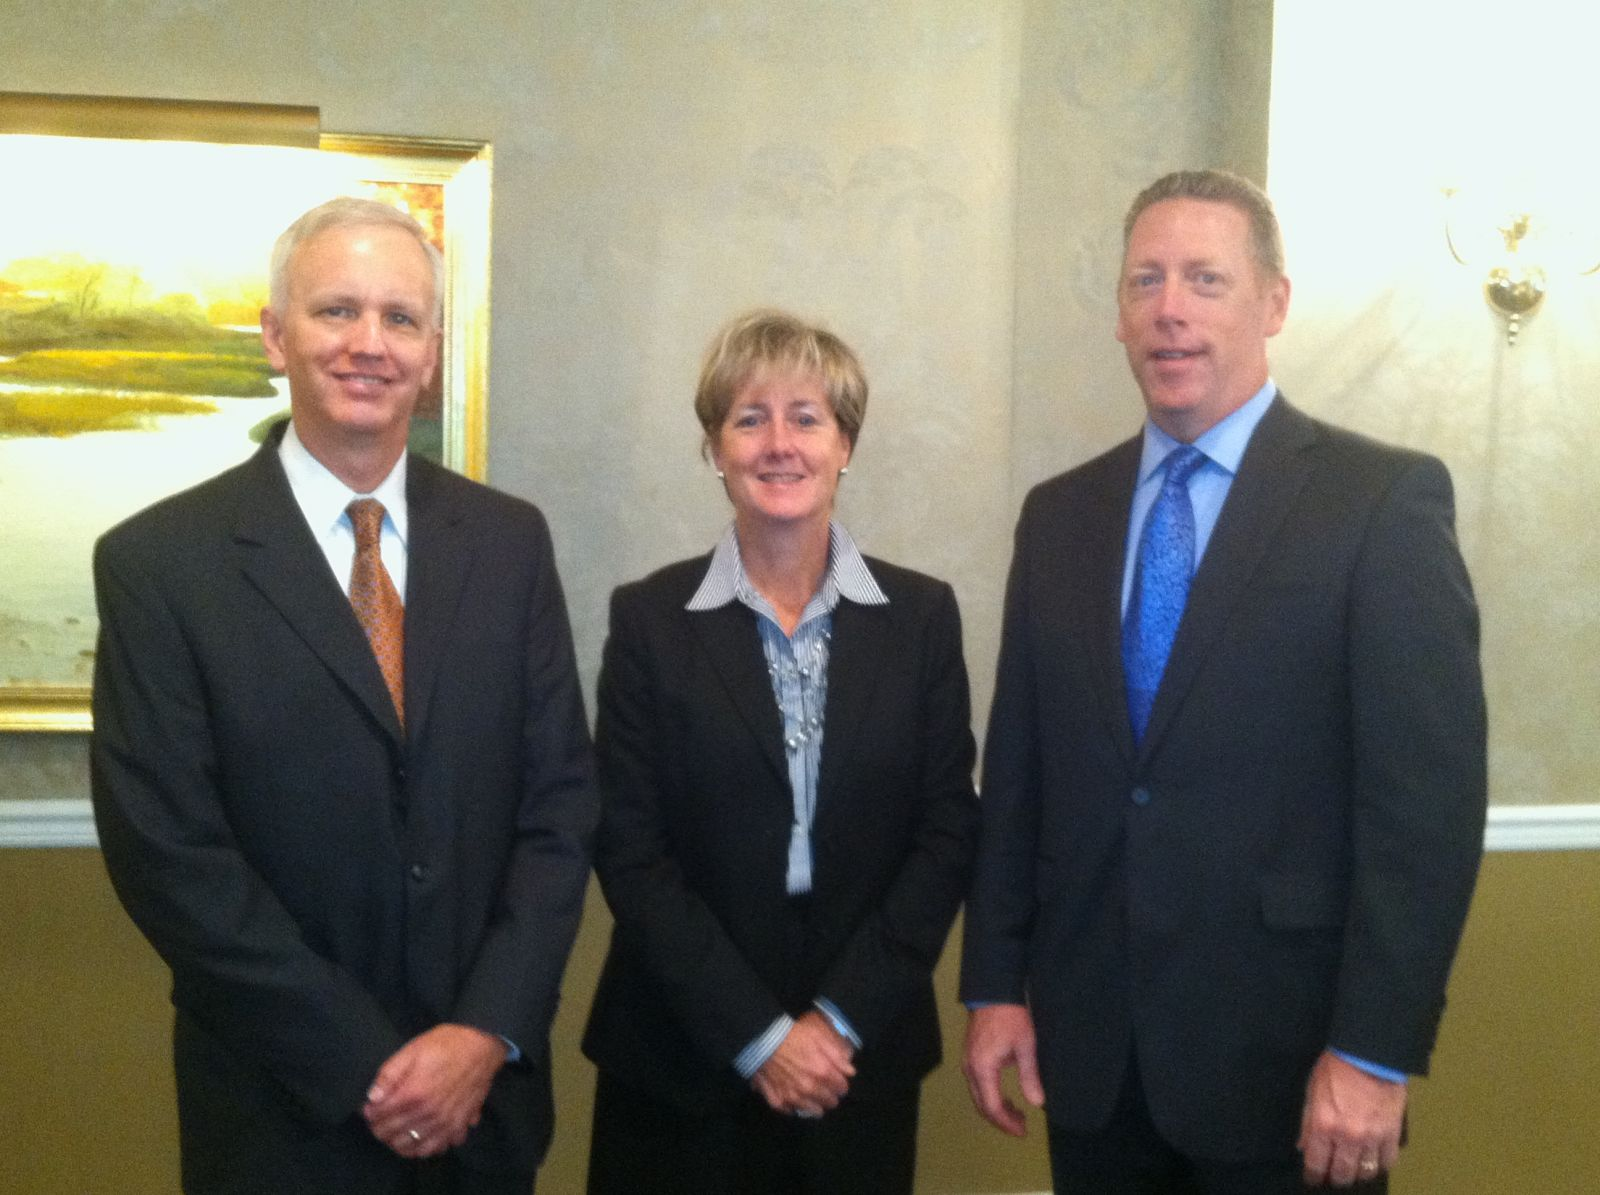 Pictured from left to right:  Mark J. Ryan, Deputy Director, Indpendent Fiscal Office; Susan M. Kirsch, Tax Shareholder, Schneider Downs; John R. Null, Audit and Assurance Shareholder, Schneider Downs